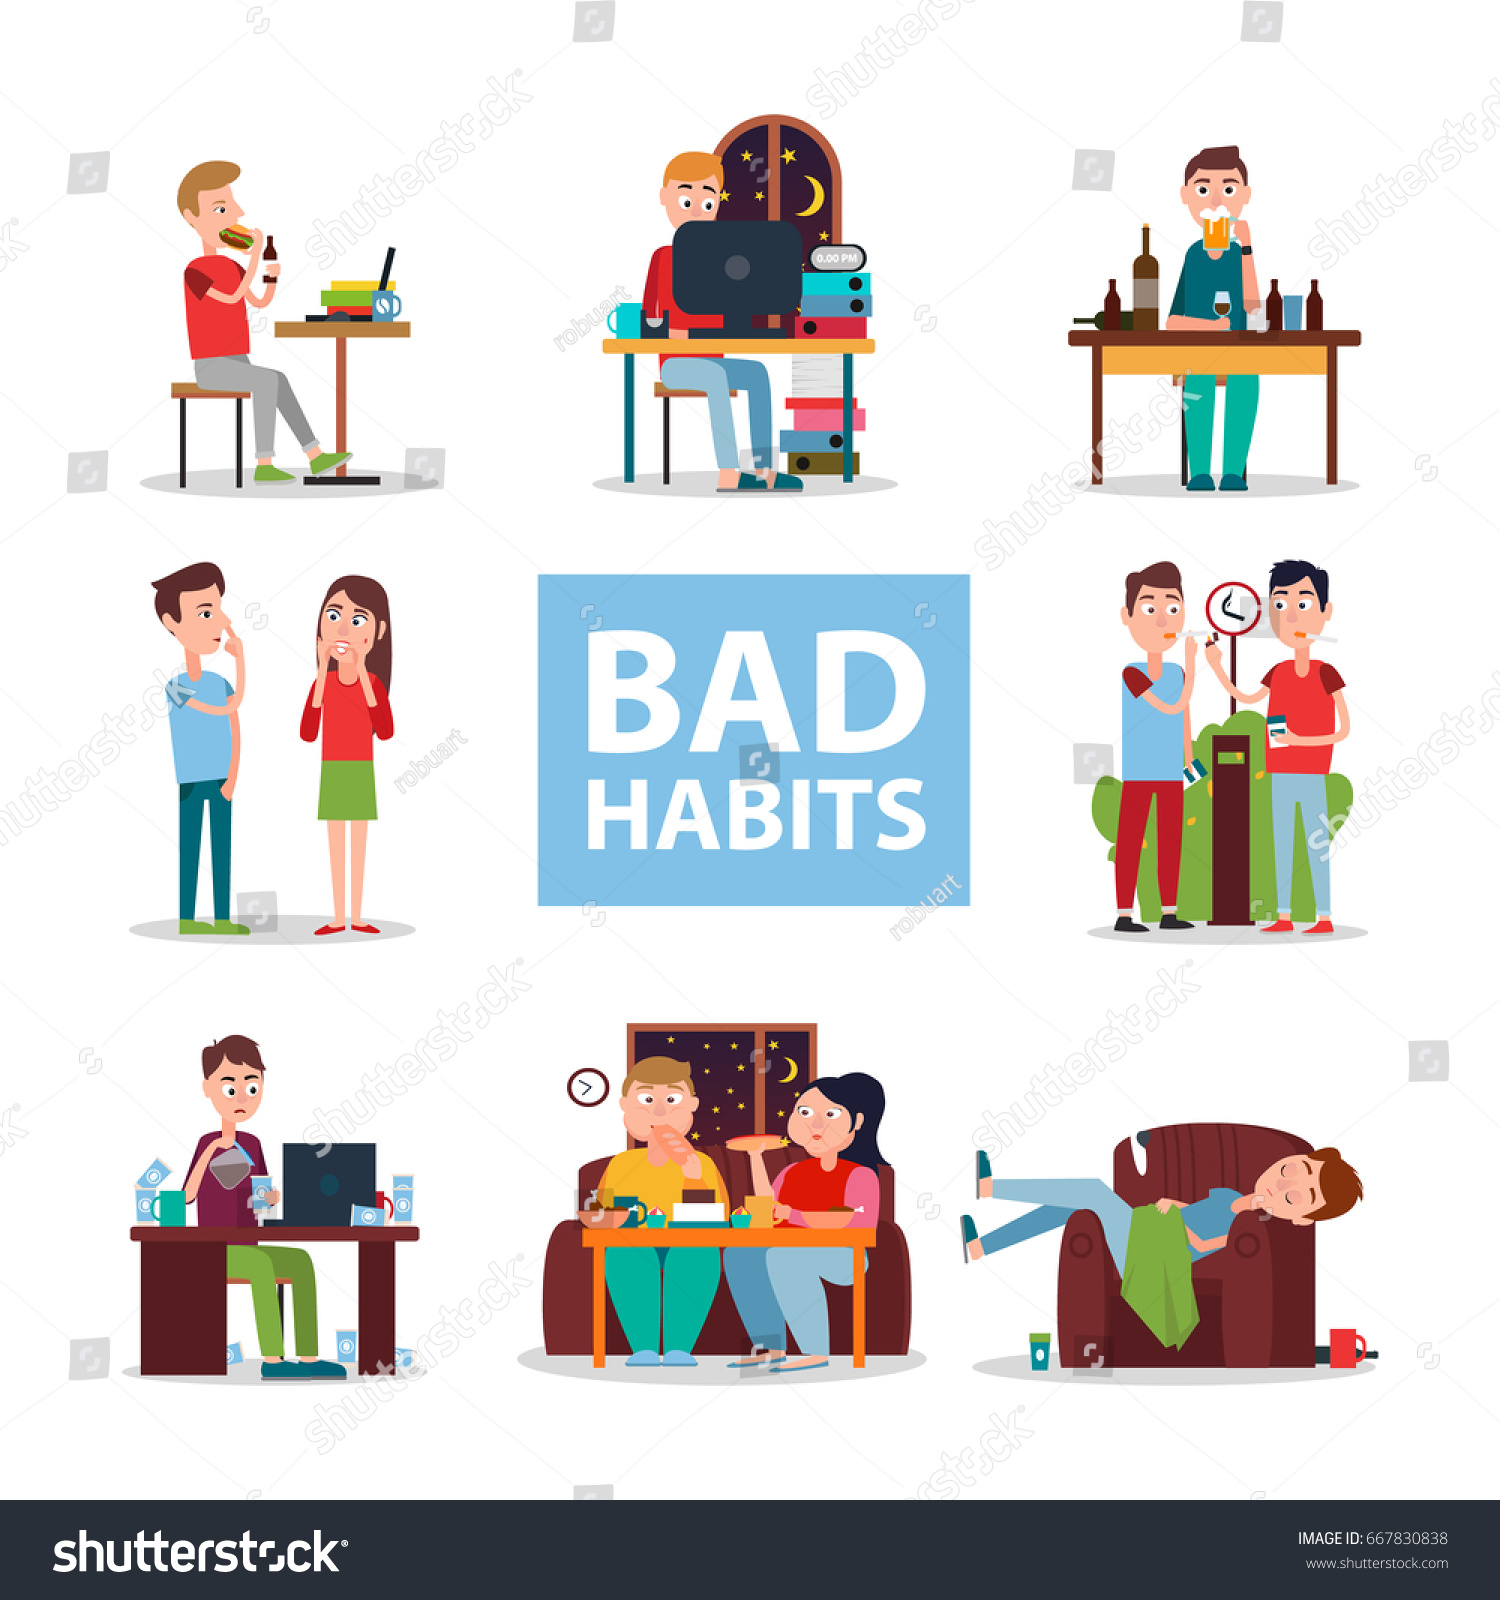 Bad Habits Poster Vector Illustration People Stock Vector